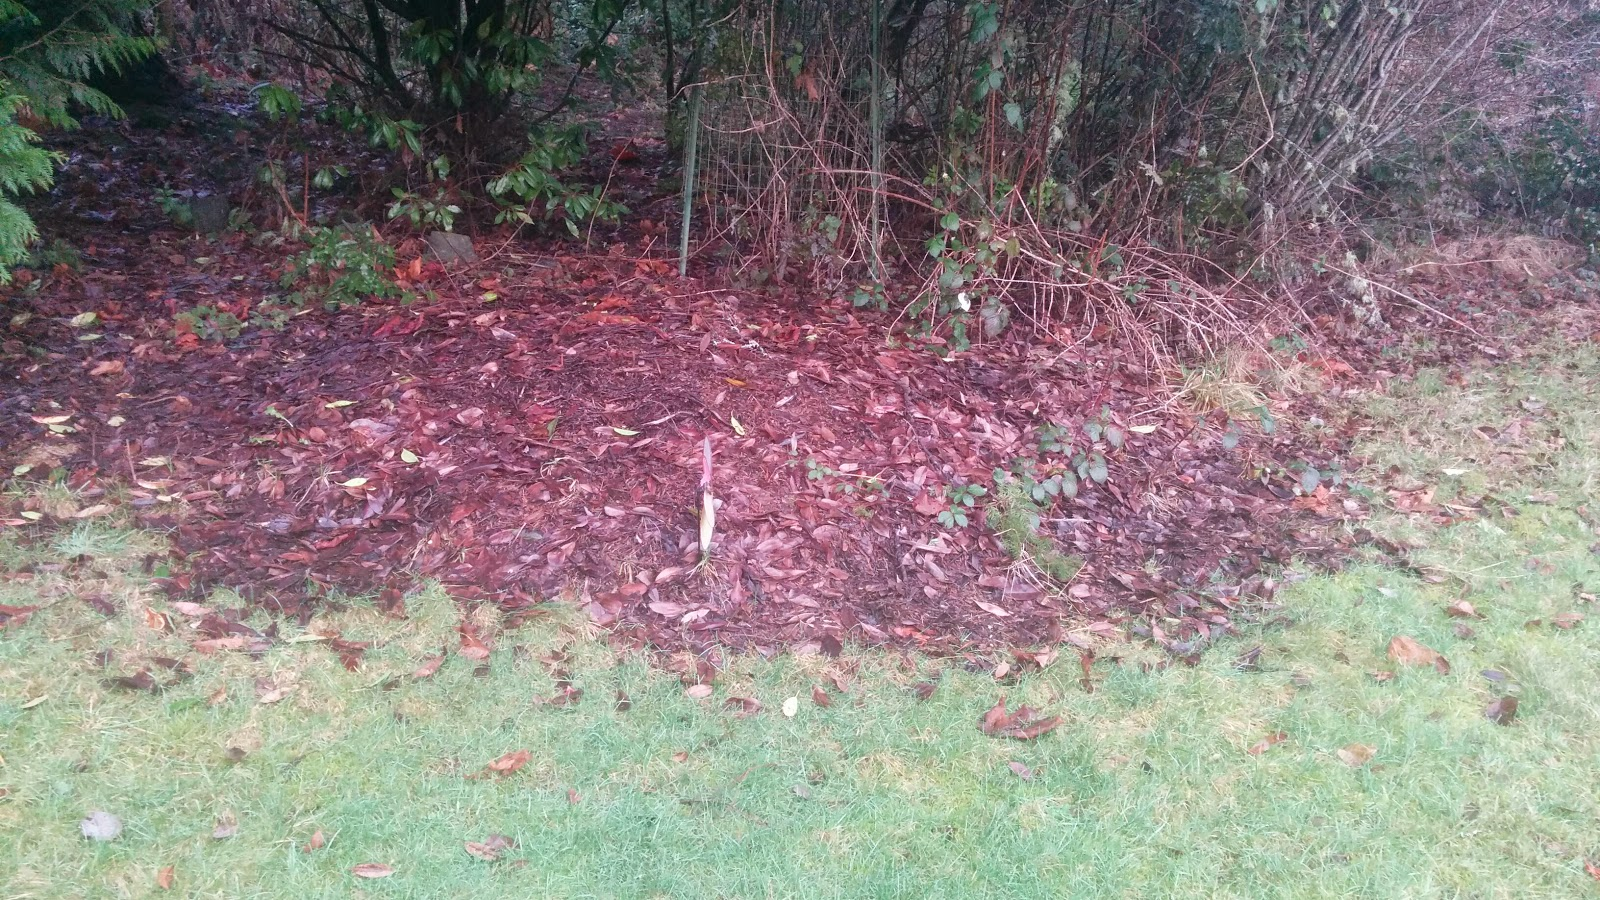 A raked up leaf pile that is largely composted.